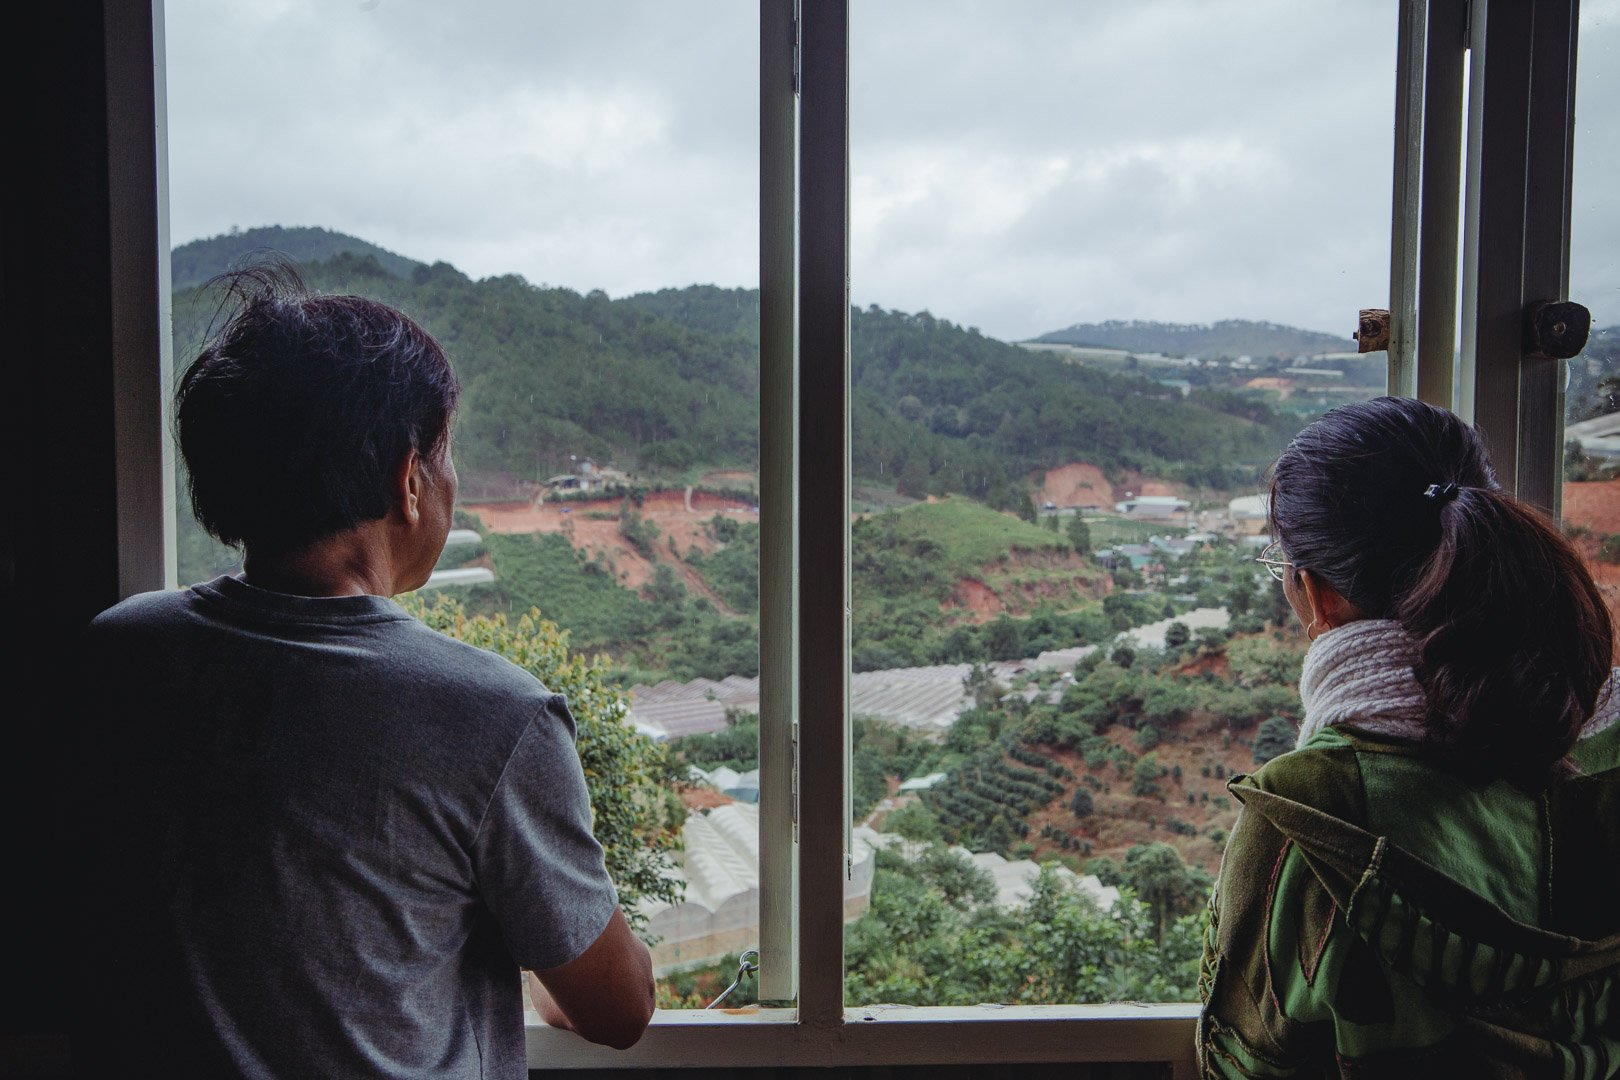 The views of the Dalat coffee farm from the workshop